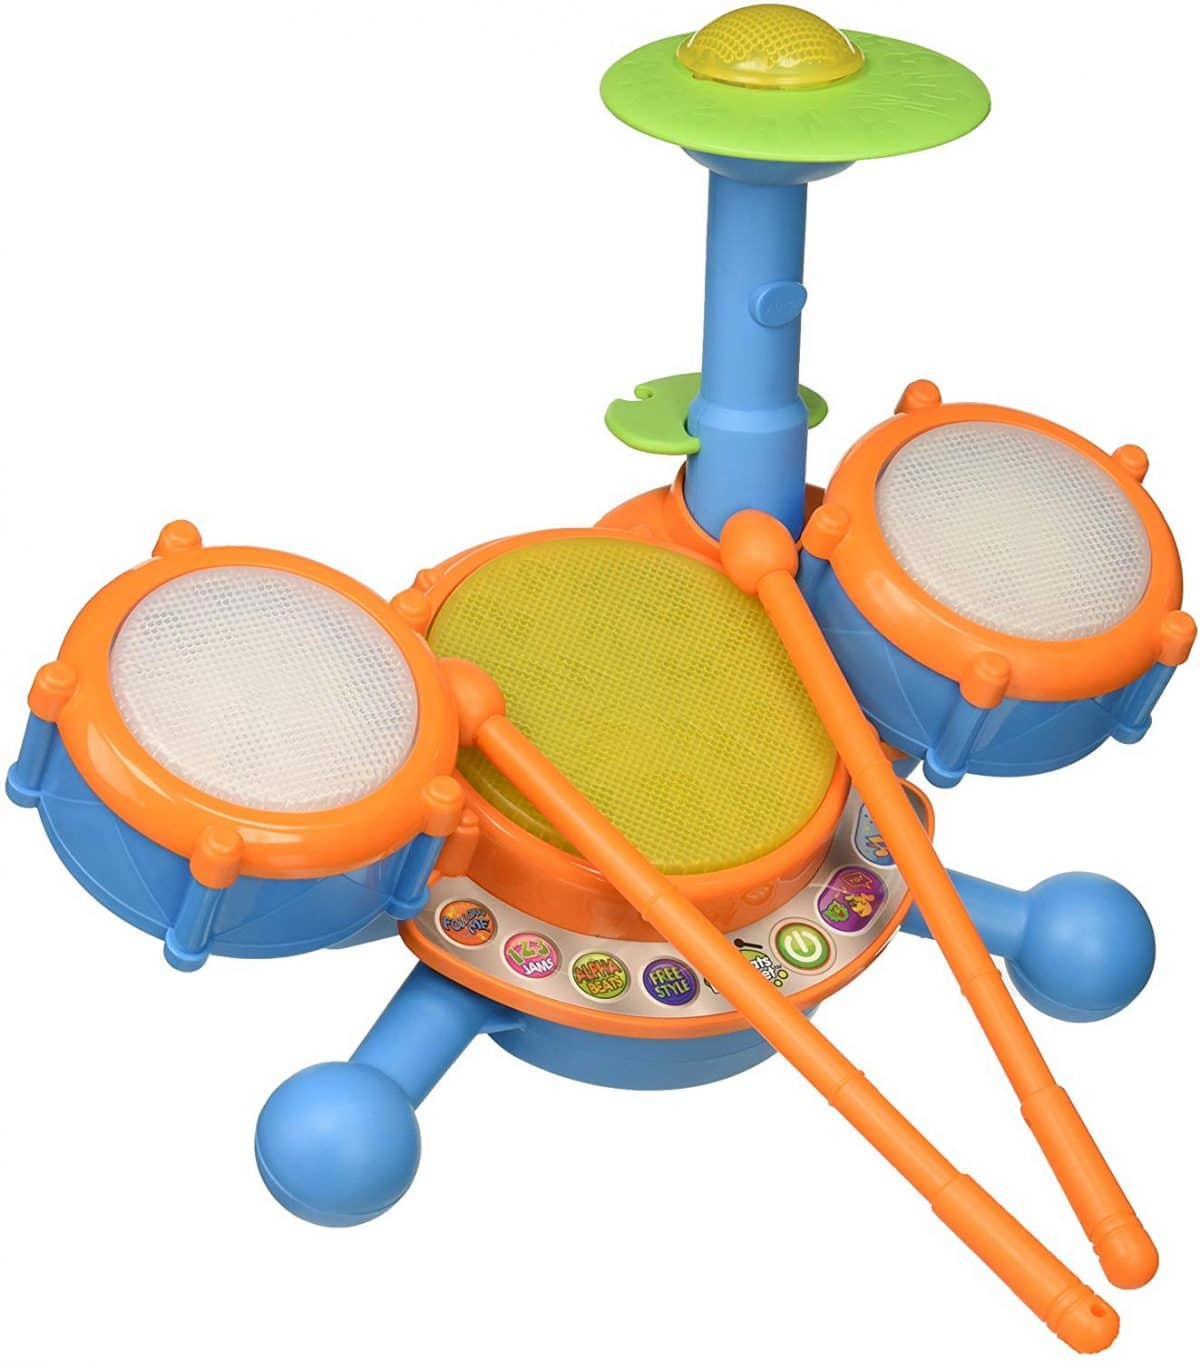 Set 1 2 Learning Educational For Toddler Baby Music /& Sound Musical Drum Toys